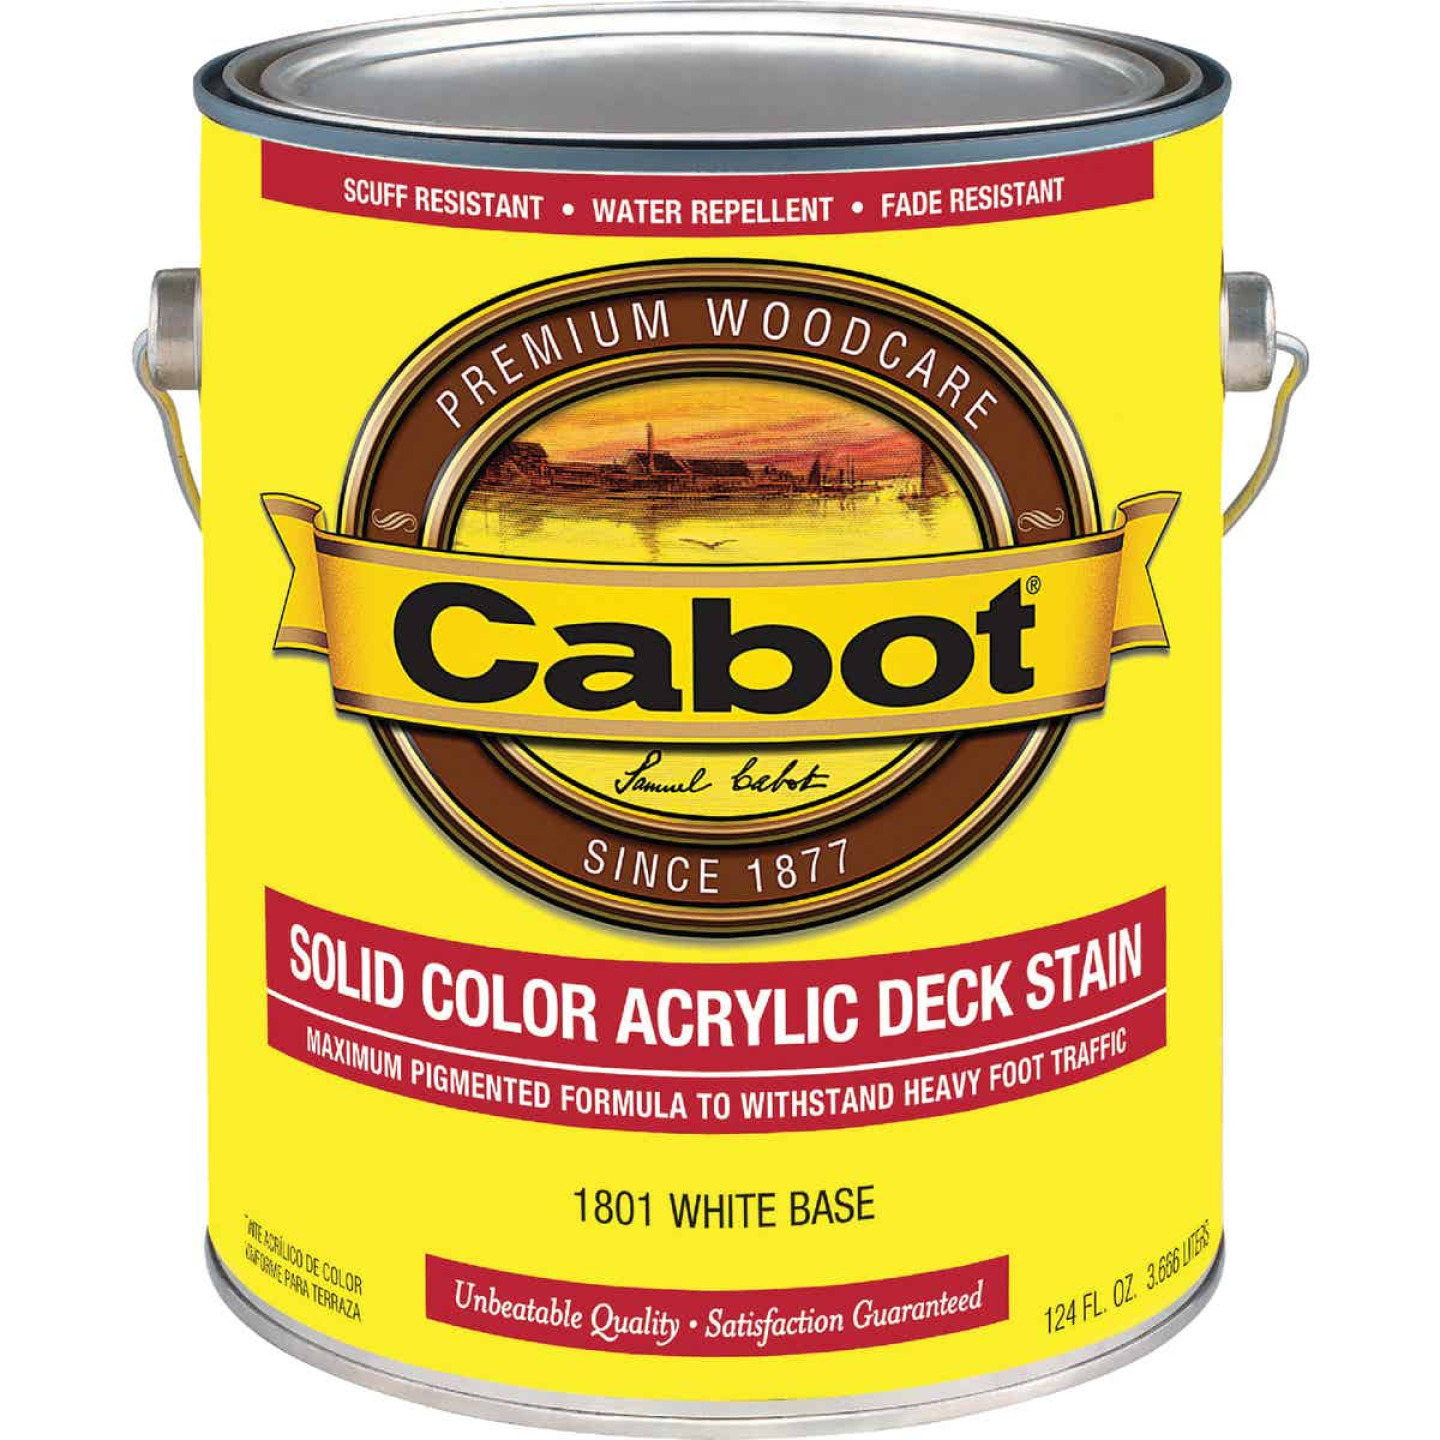 Cabot Solid Color Acrylic Deck Stain, White Base, 1 Gal. Image 1